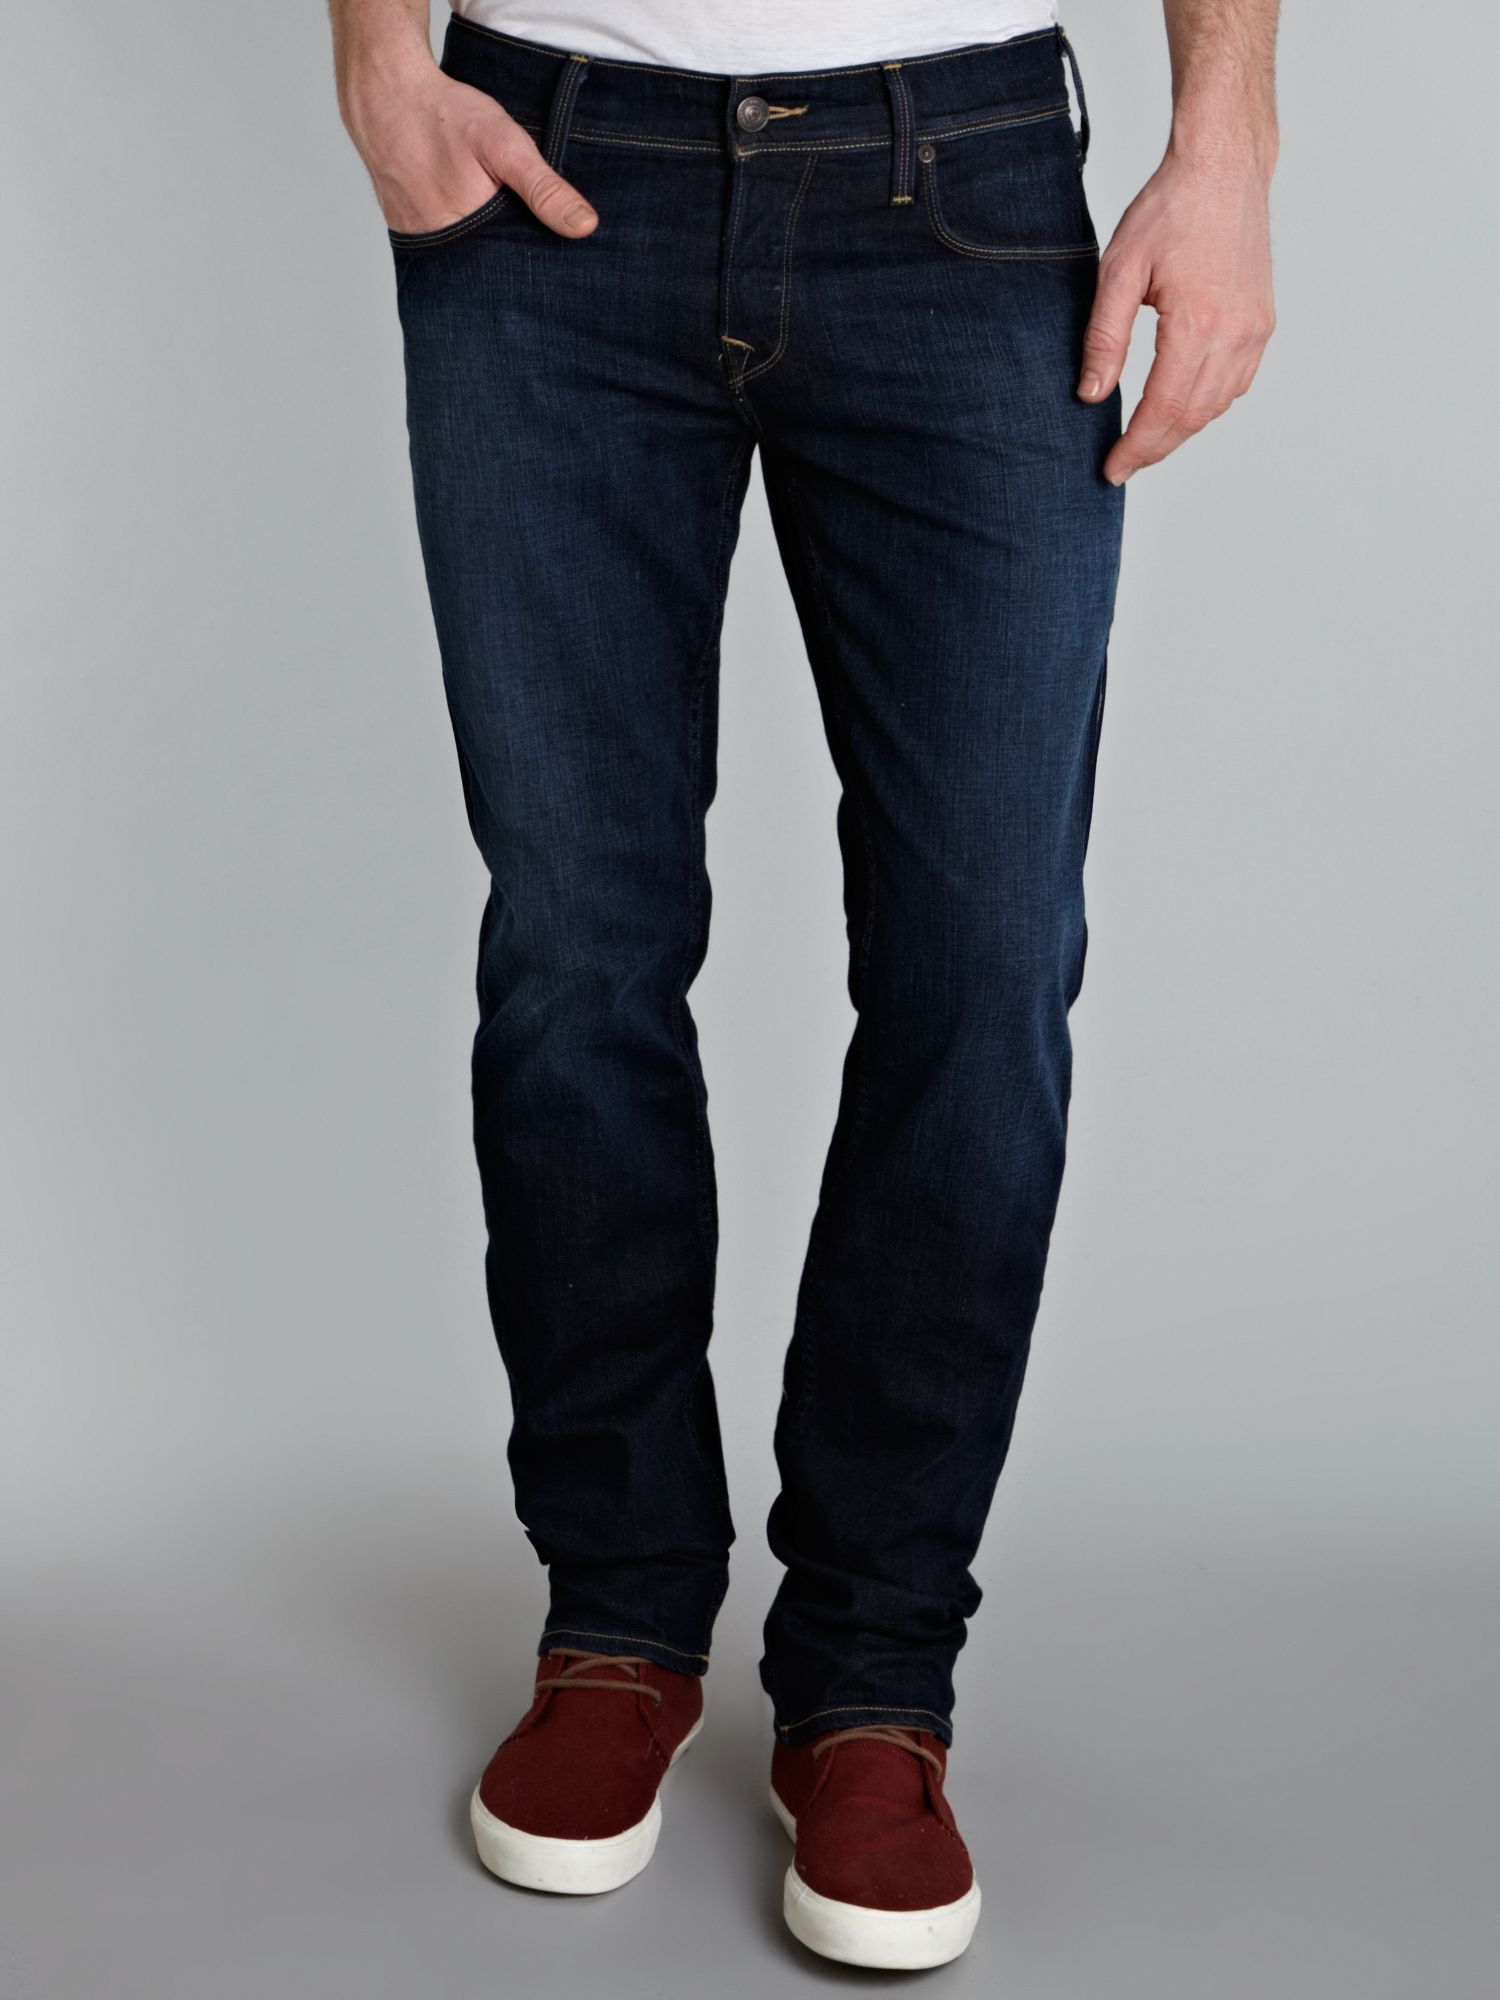 Geno eclipse lonestar slim fit jeans